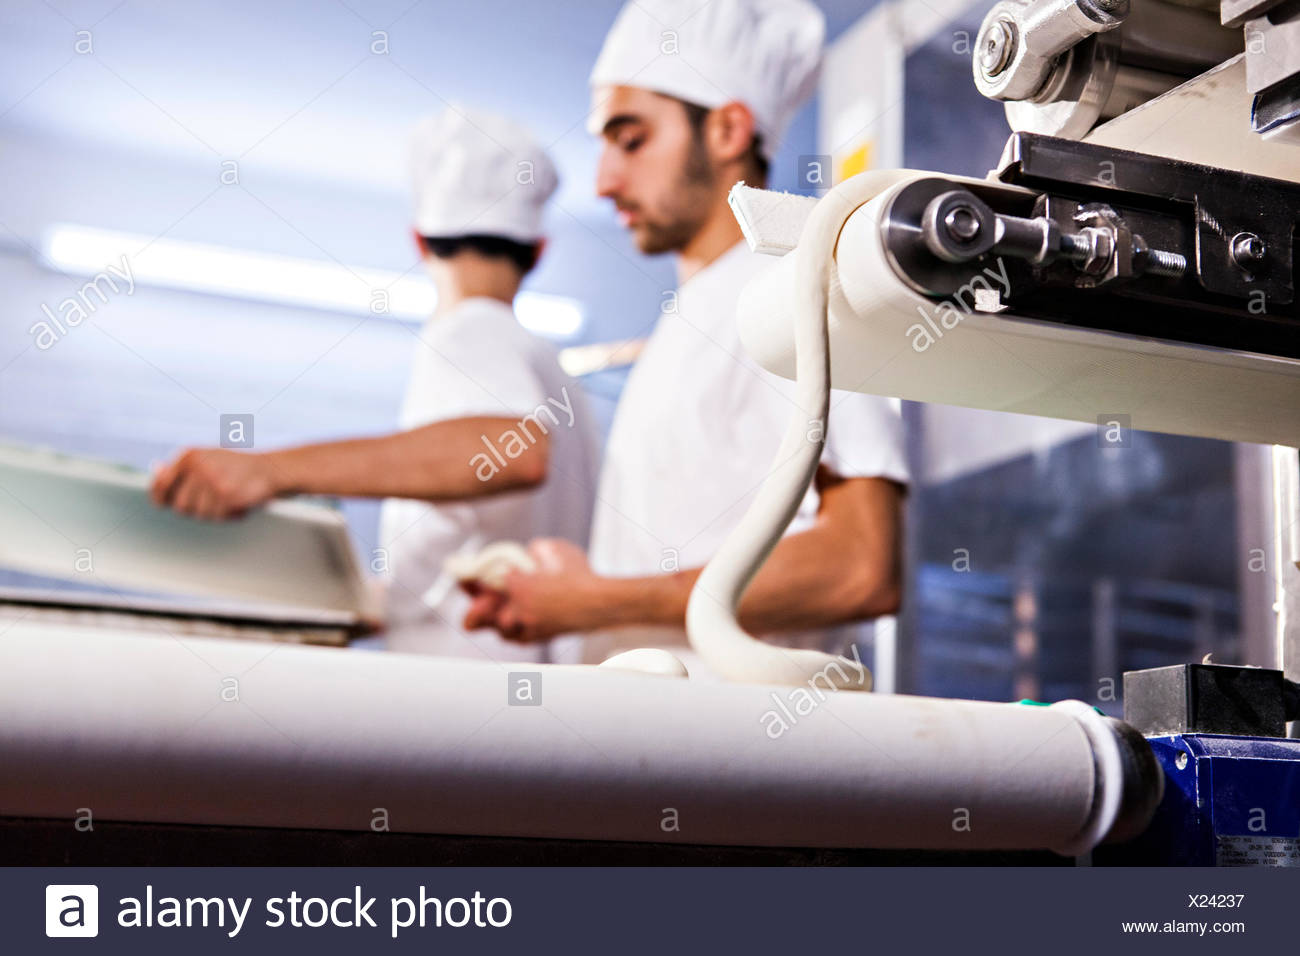 Bakers making pastry dough - Stock Image